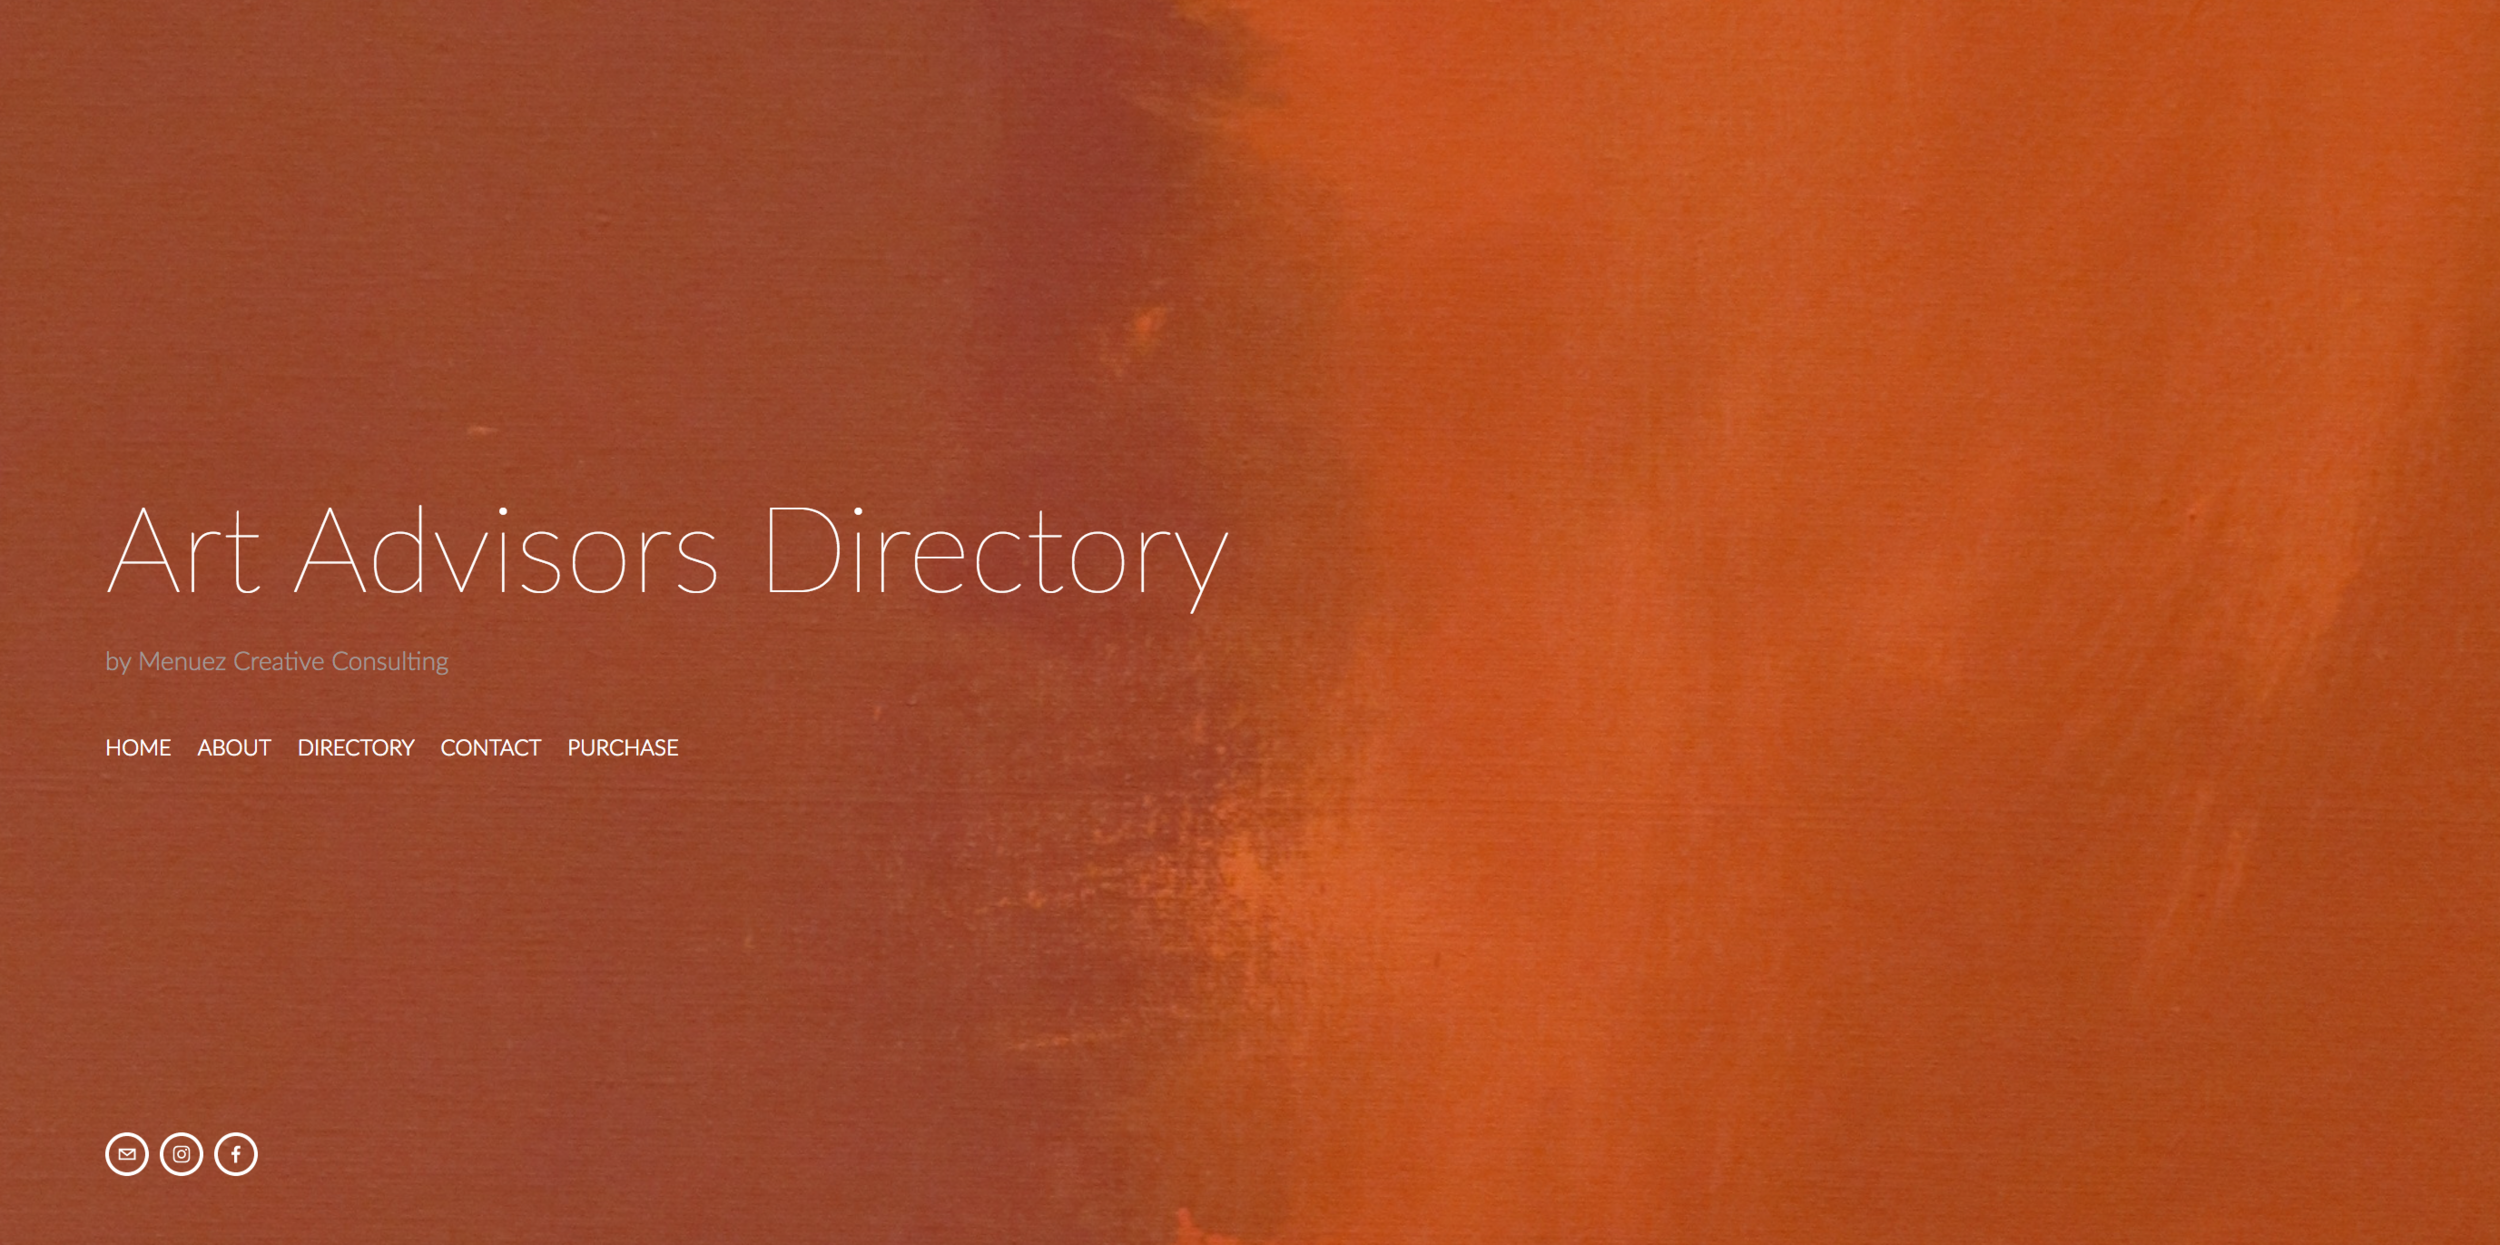 Art_Advisors_Directory_website.png